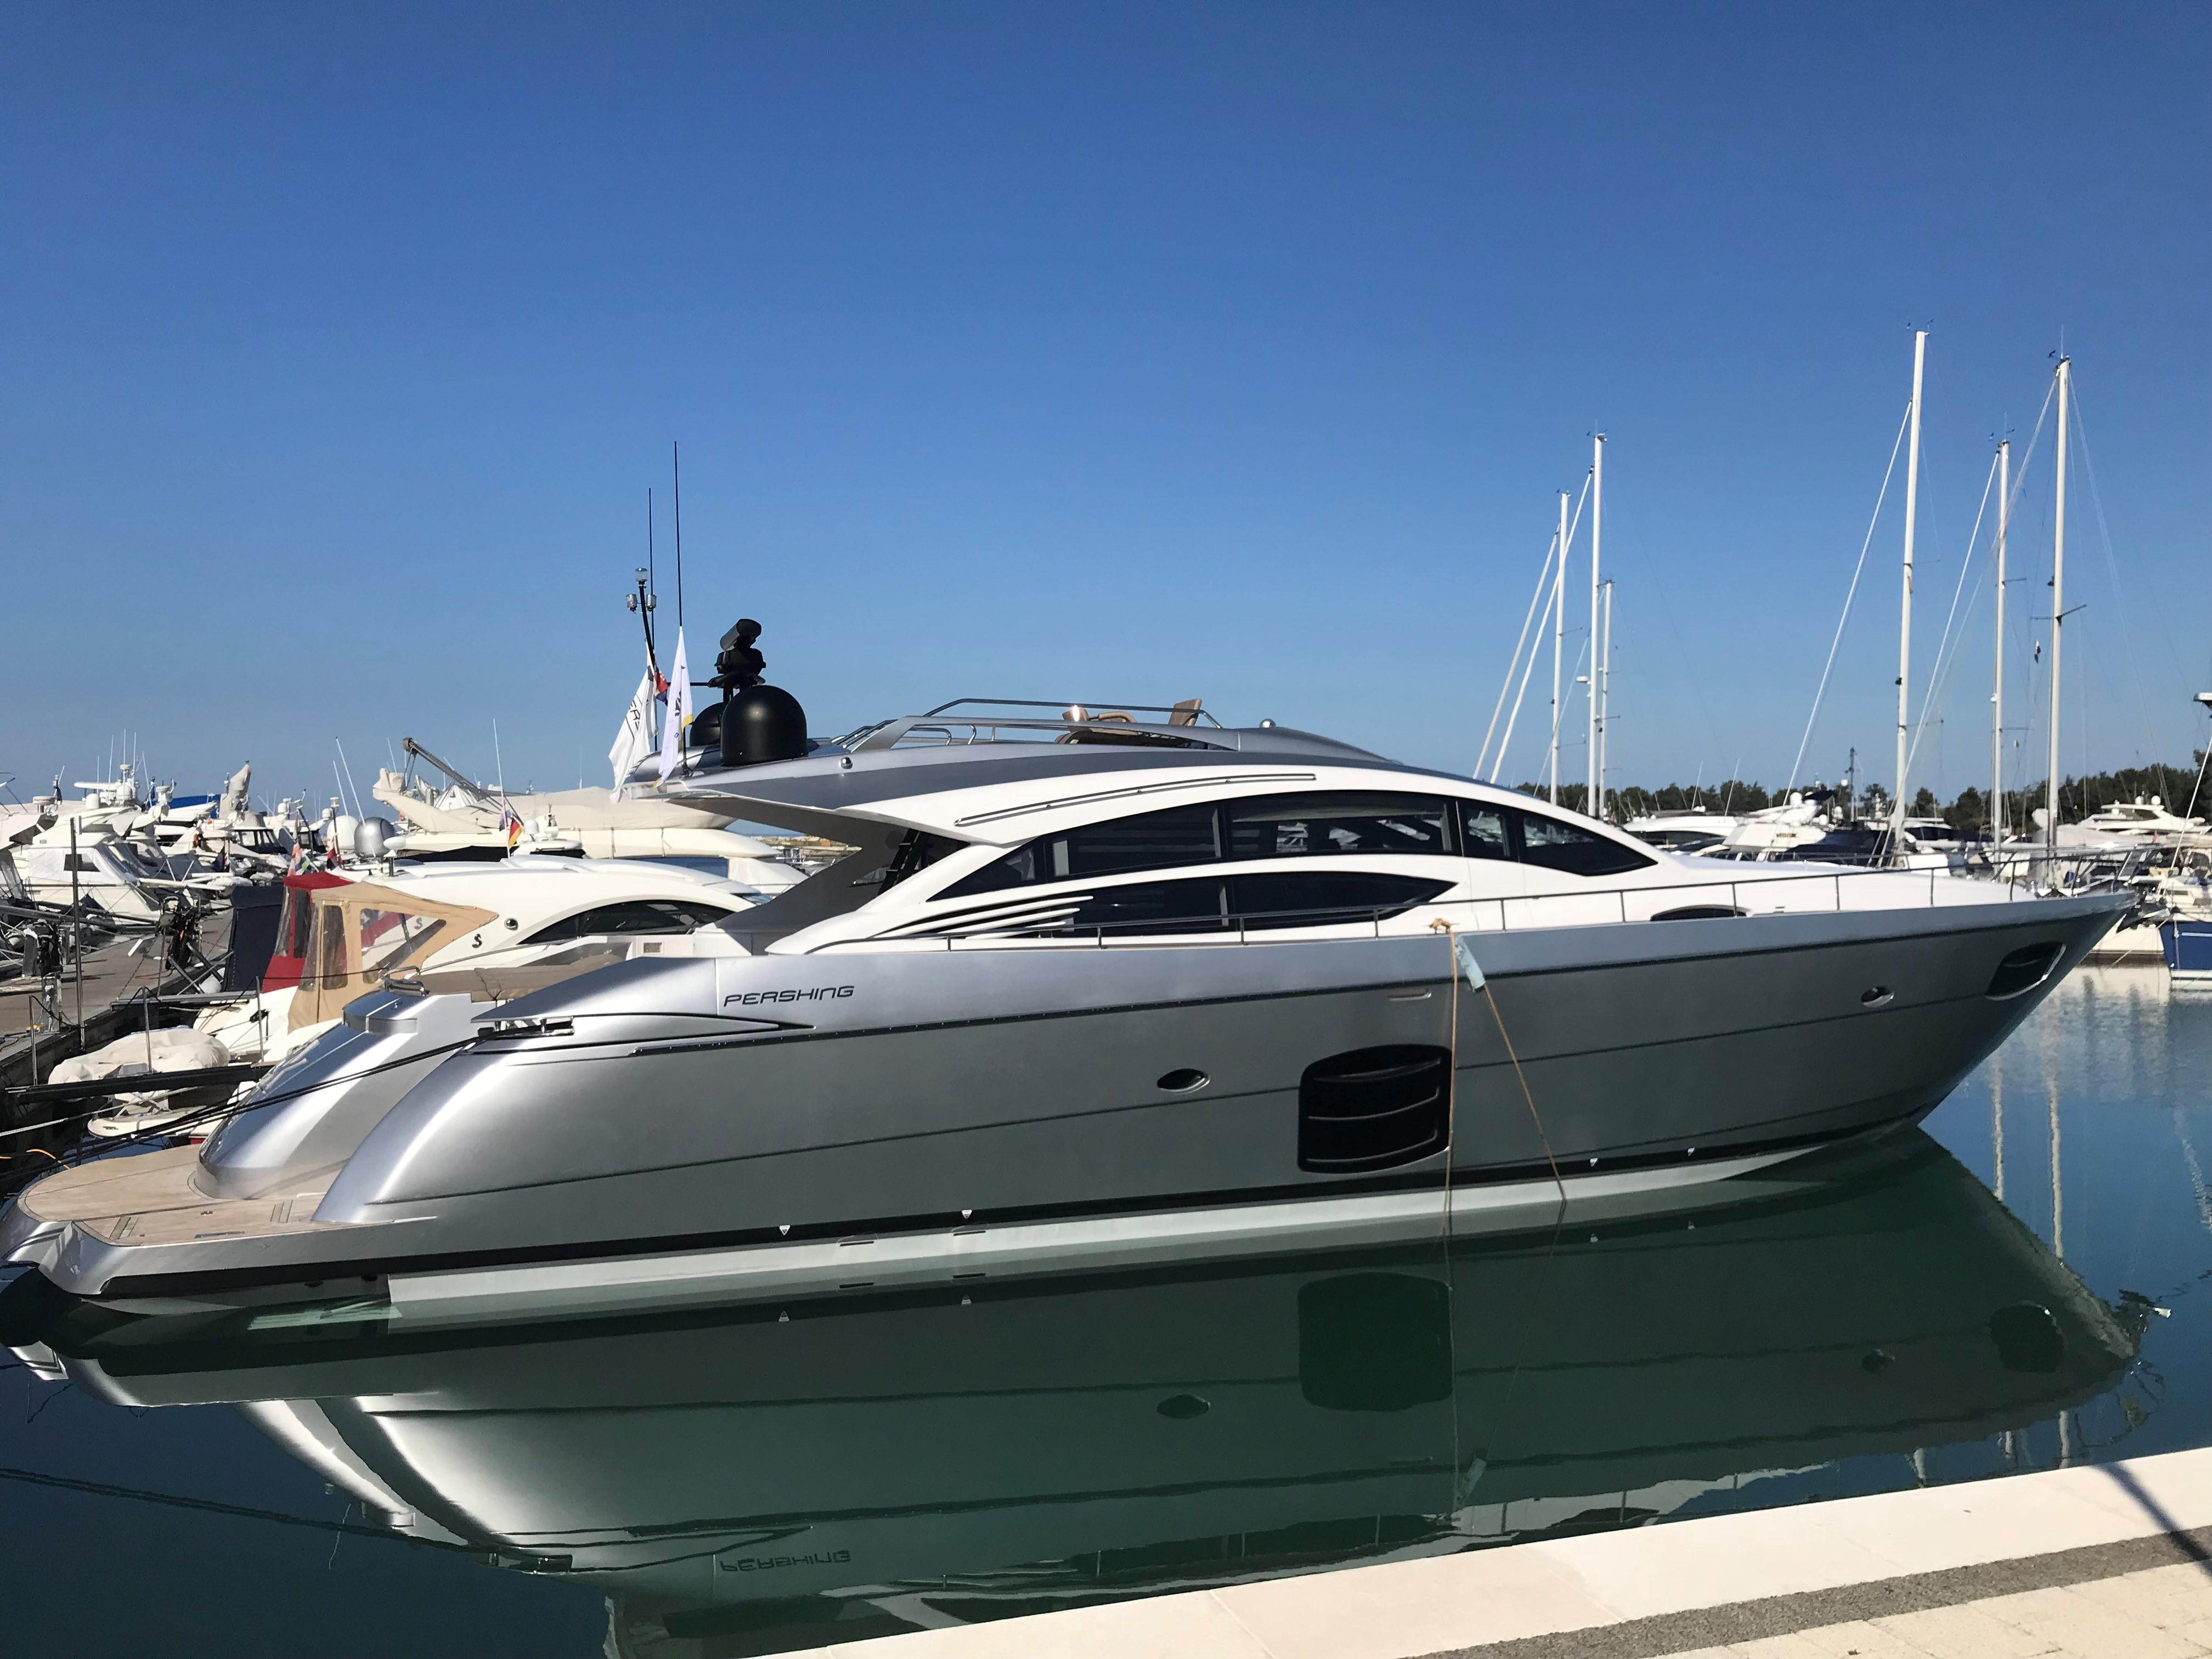 2013 74' Pershing 74 for sale - SYS Yacht Sales